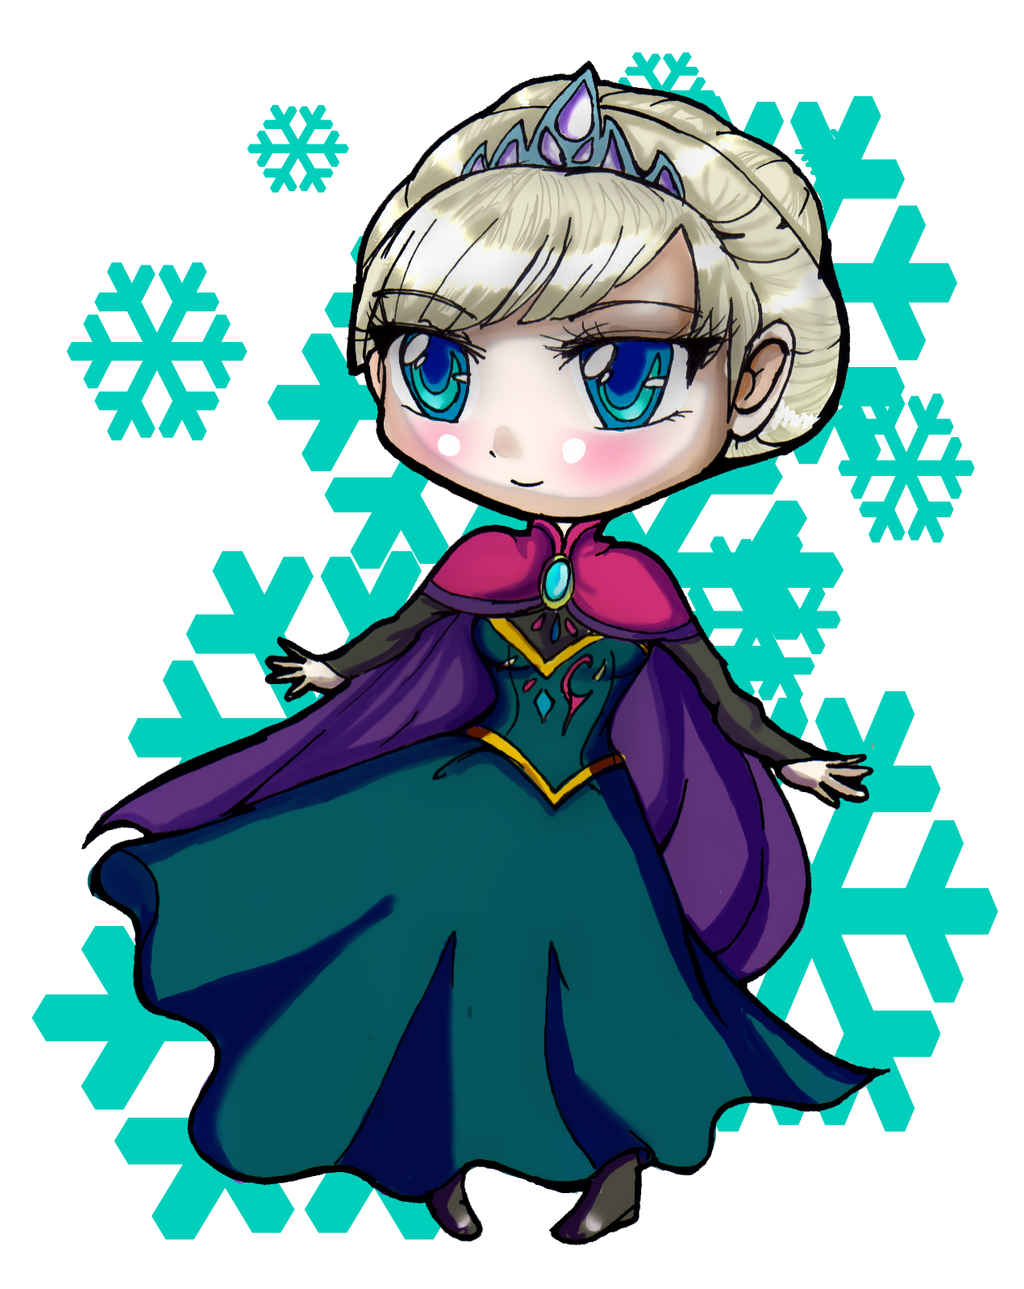 ... media drawings 2014 2015 danielle chan wanted to draw elsa in her